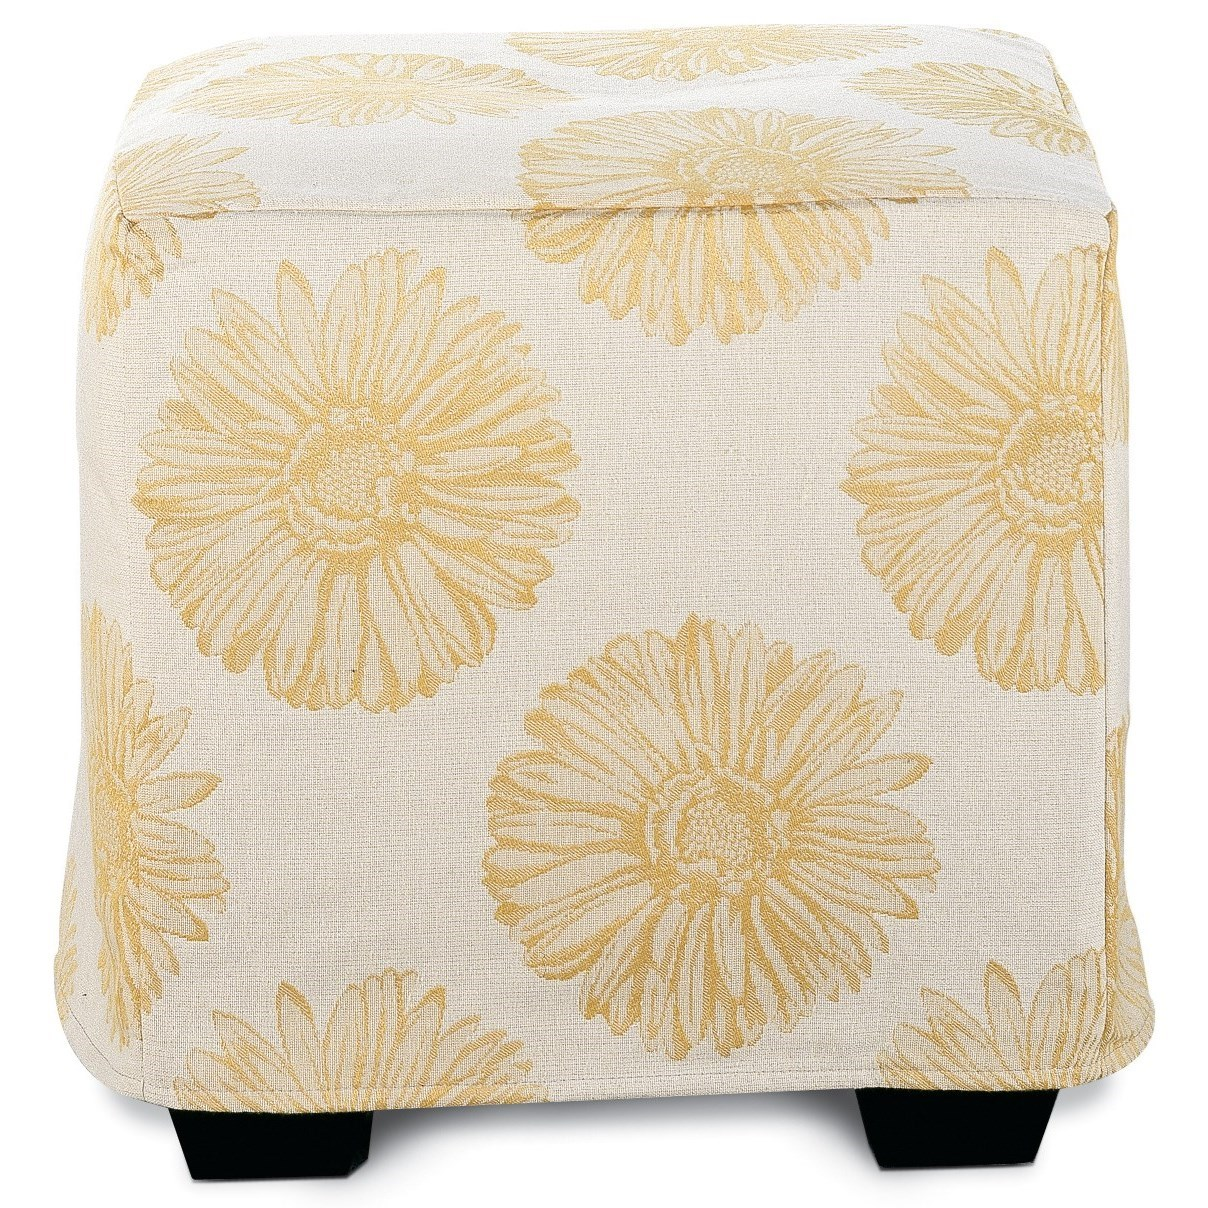 Chairs and Accents Le Parc Slipcover Ottoman by Rowe at Steger's Furniture